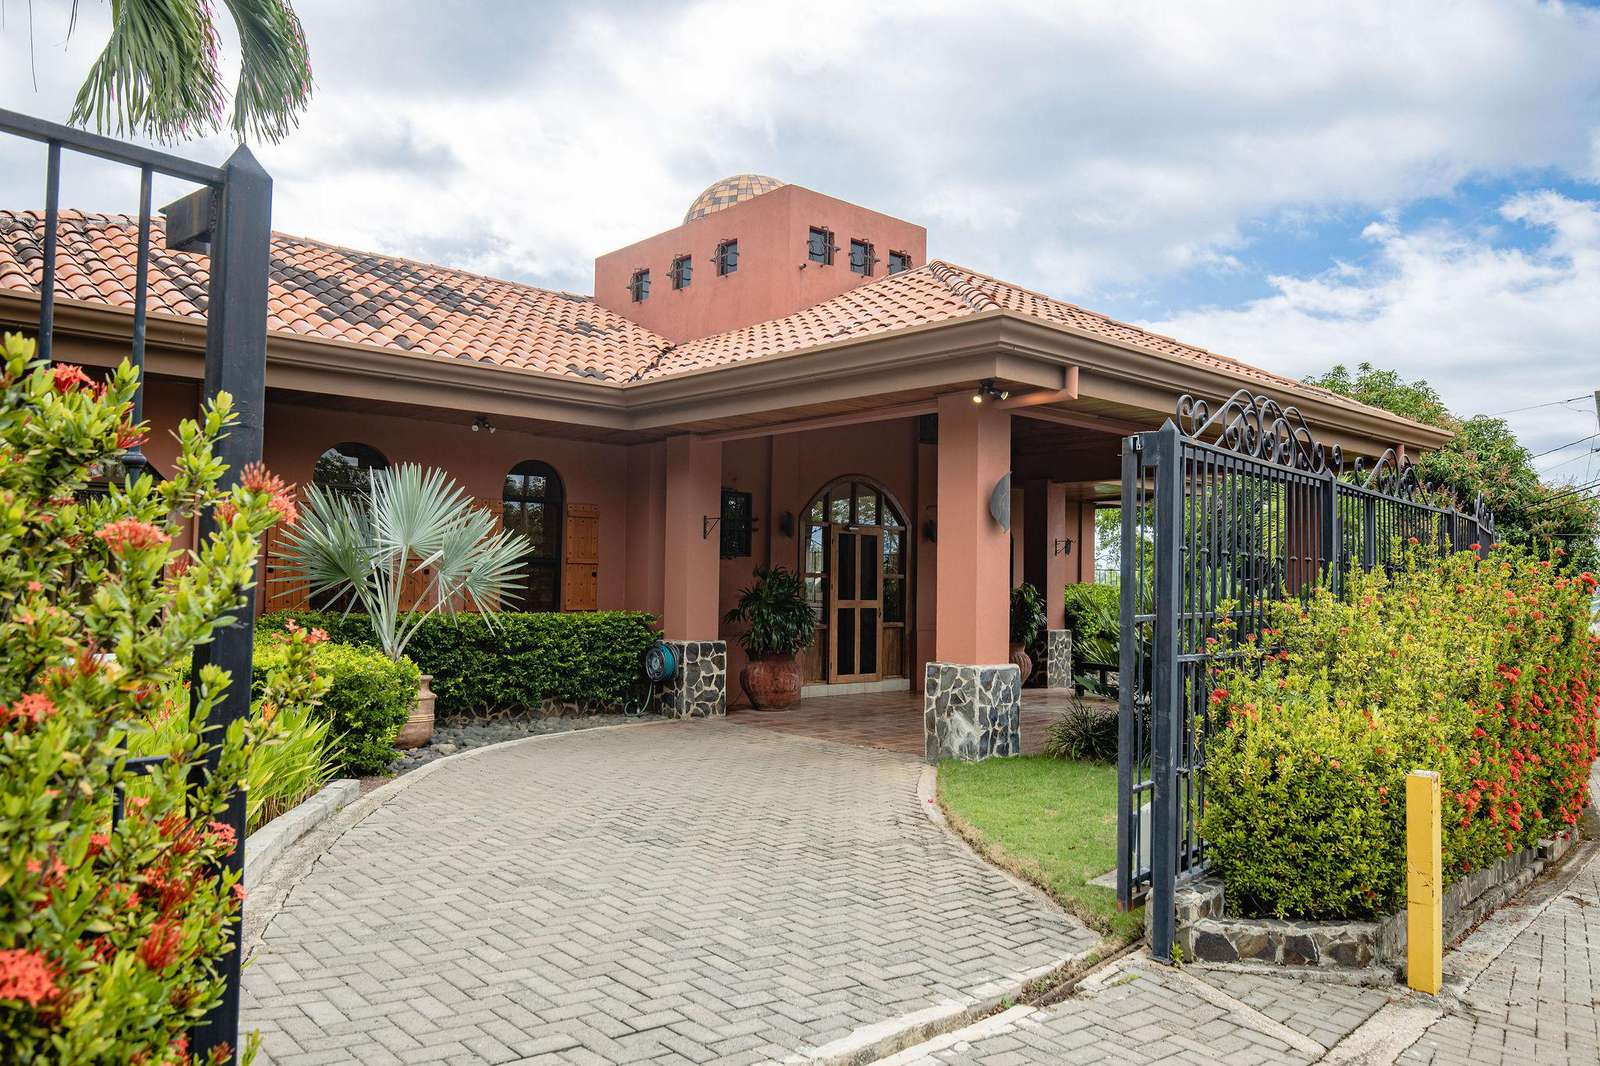 Casa Rosa, exterior, main gated entry view